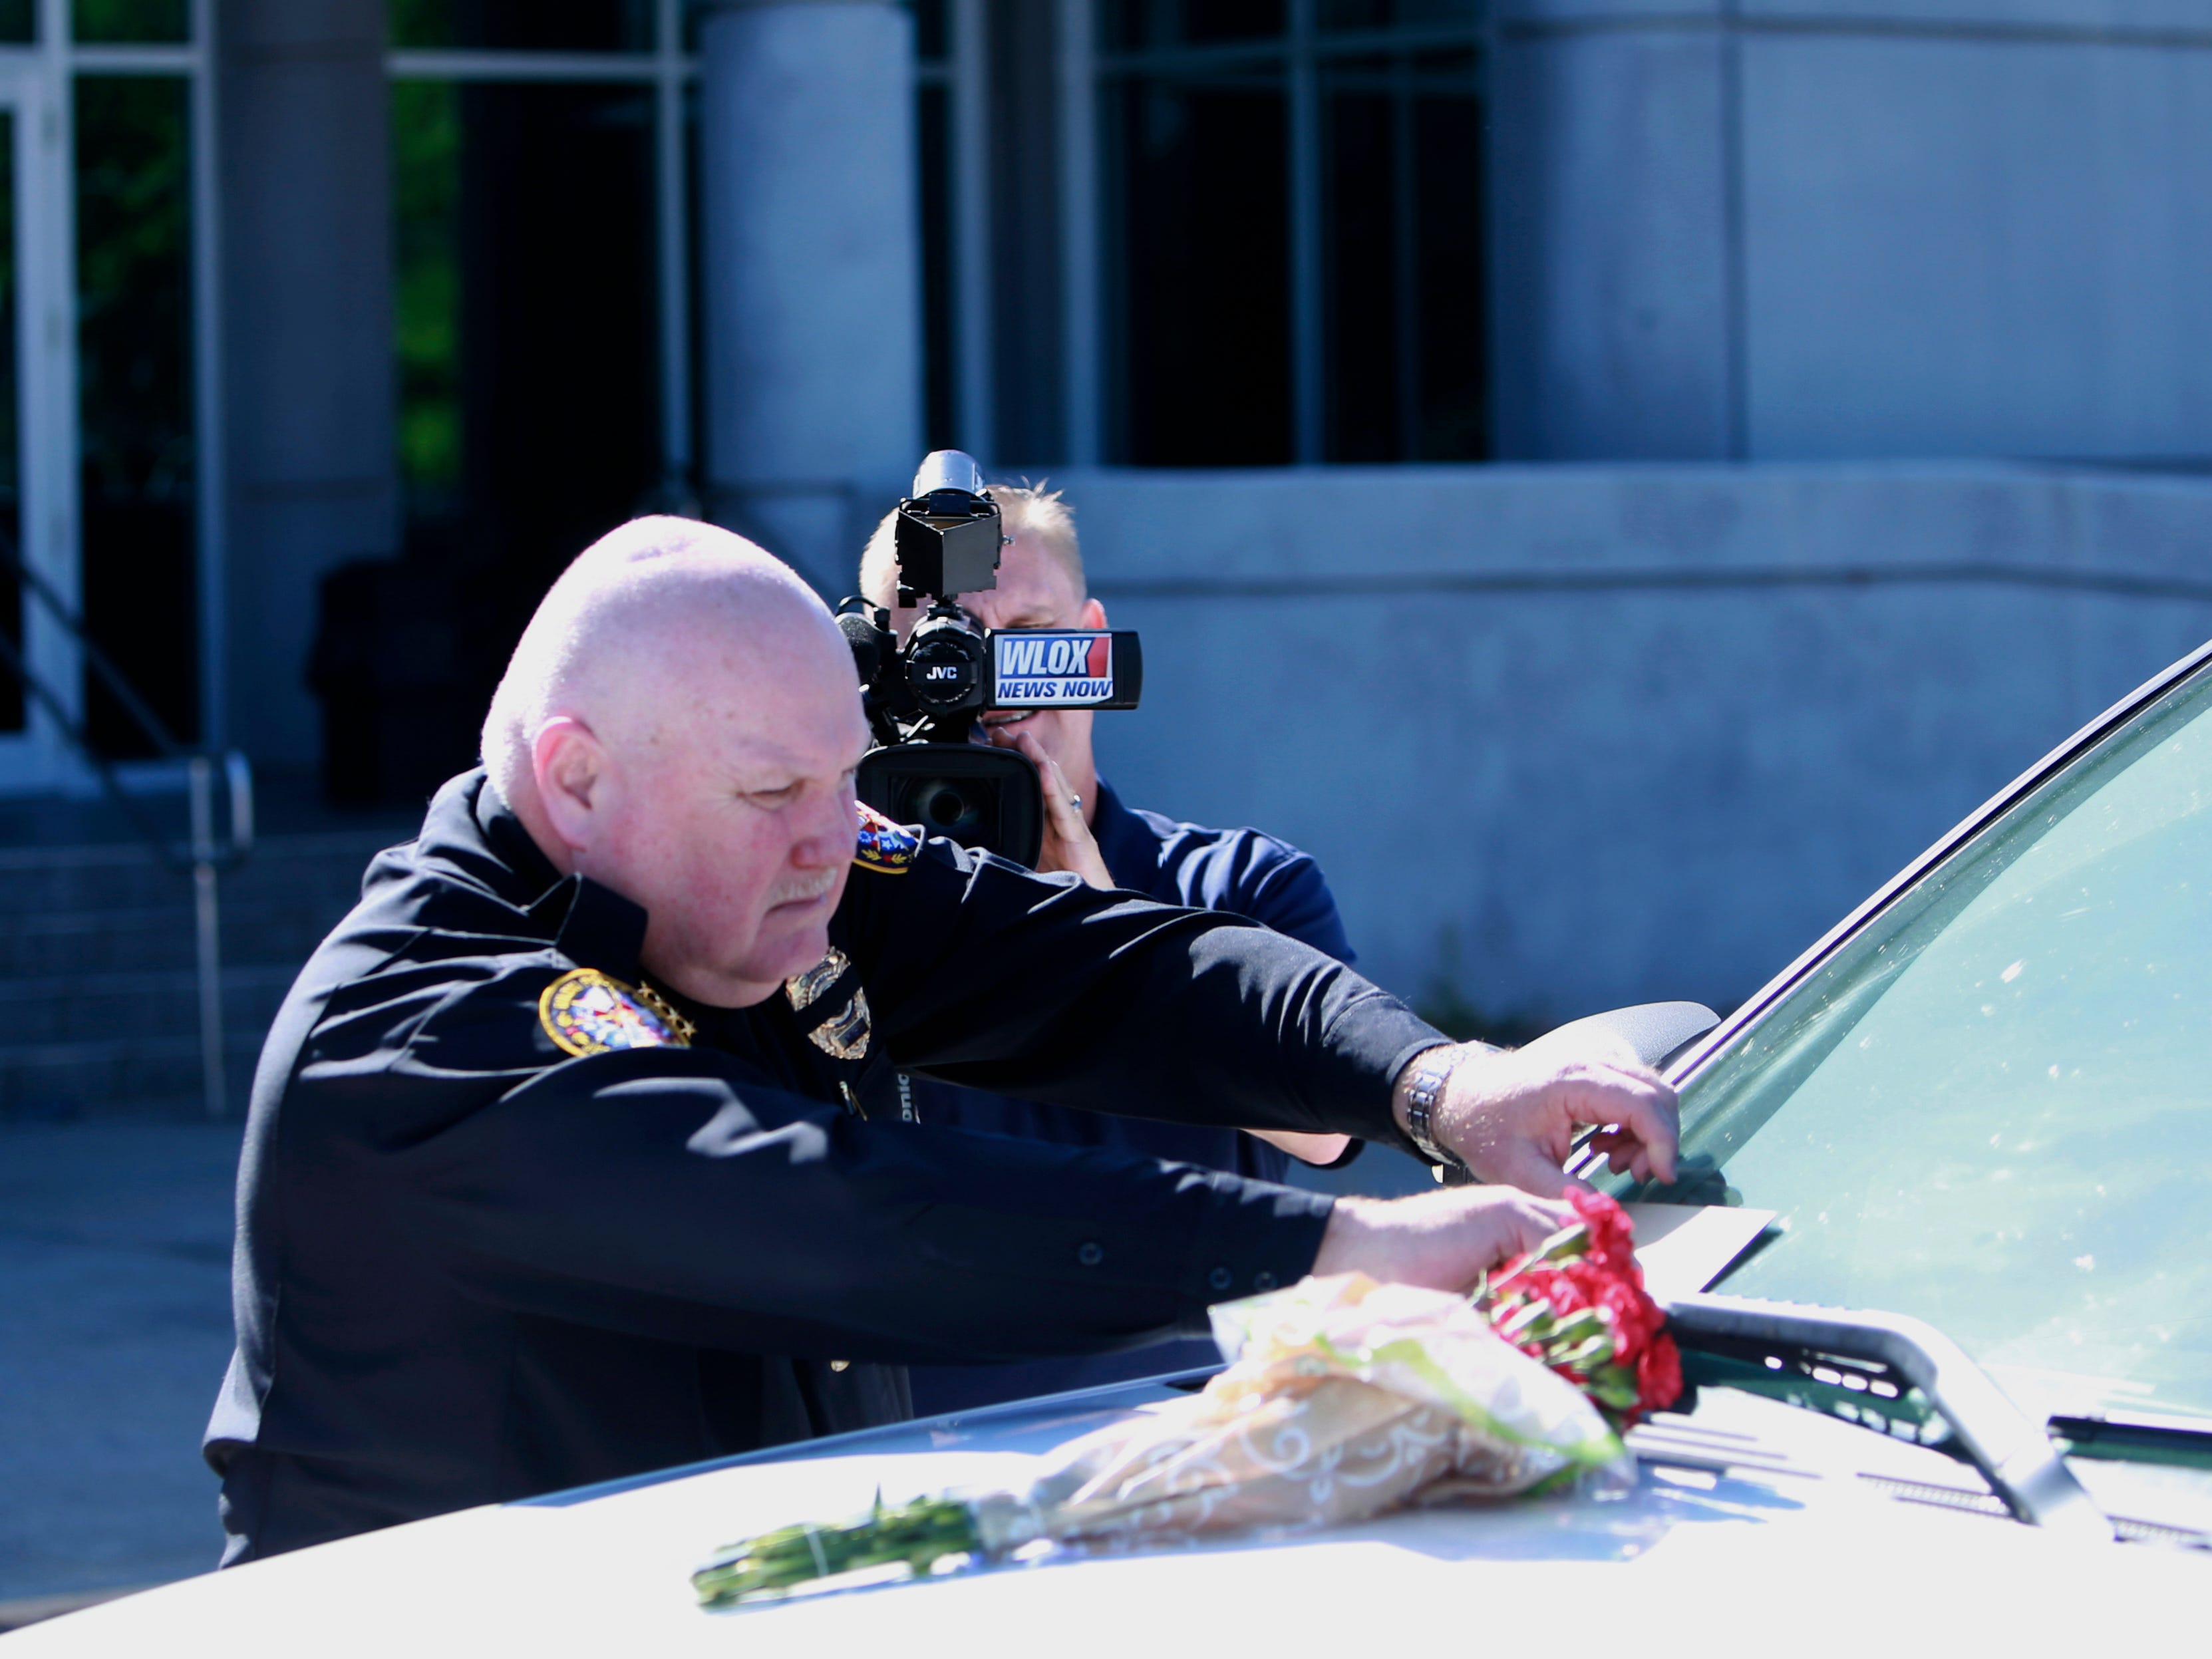 Biloxi Police Chief John Miller places flowers and a card on the police SUV of Officer Robert McKeithen, outside the station in Biloxi, Miss., Monday, May 6, 2019. McKeithen was killed in the line of duty outside the Biloxi Police Department, Sunday night. A manhunt is underway to find the suspect, who shot McKeithen multiple times, police say.